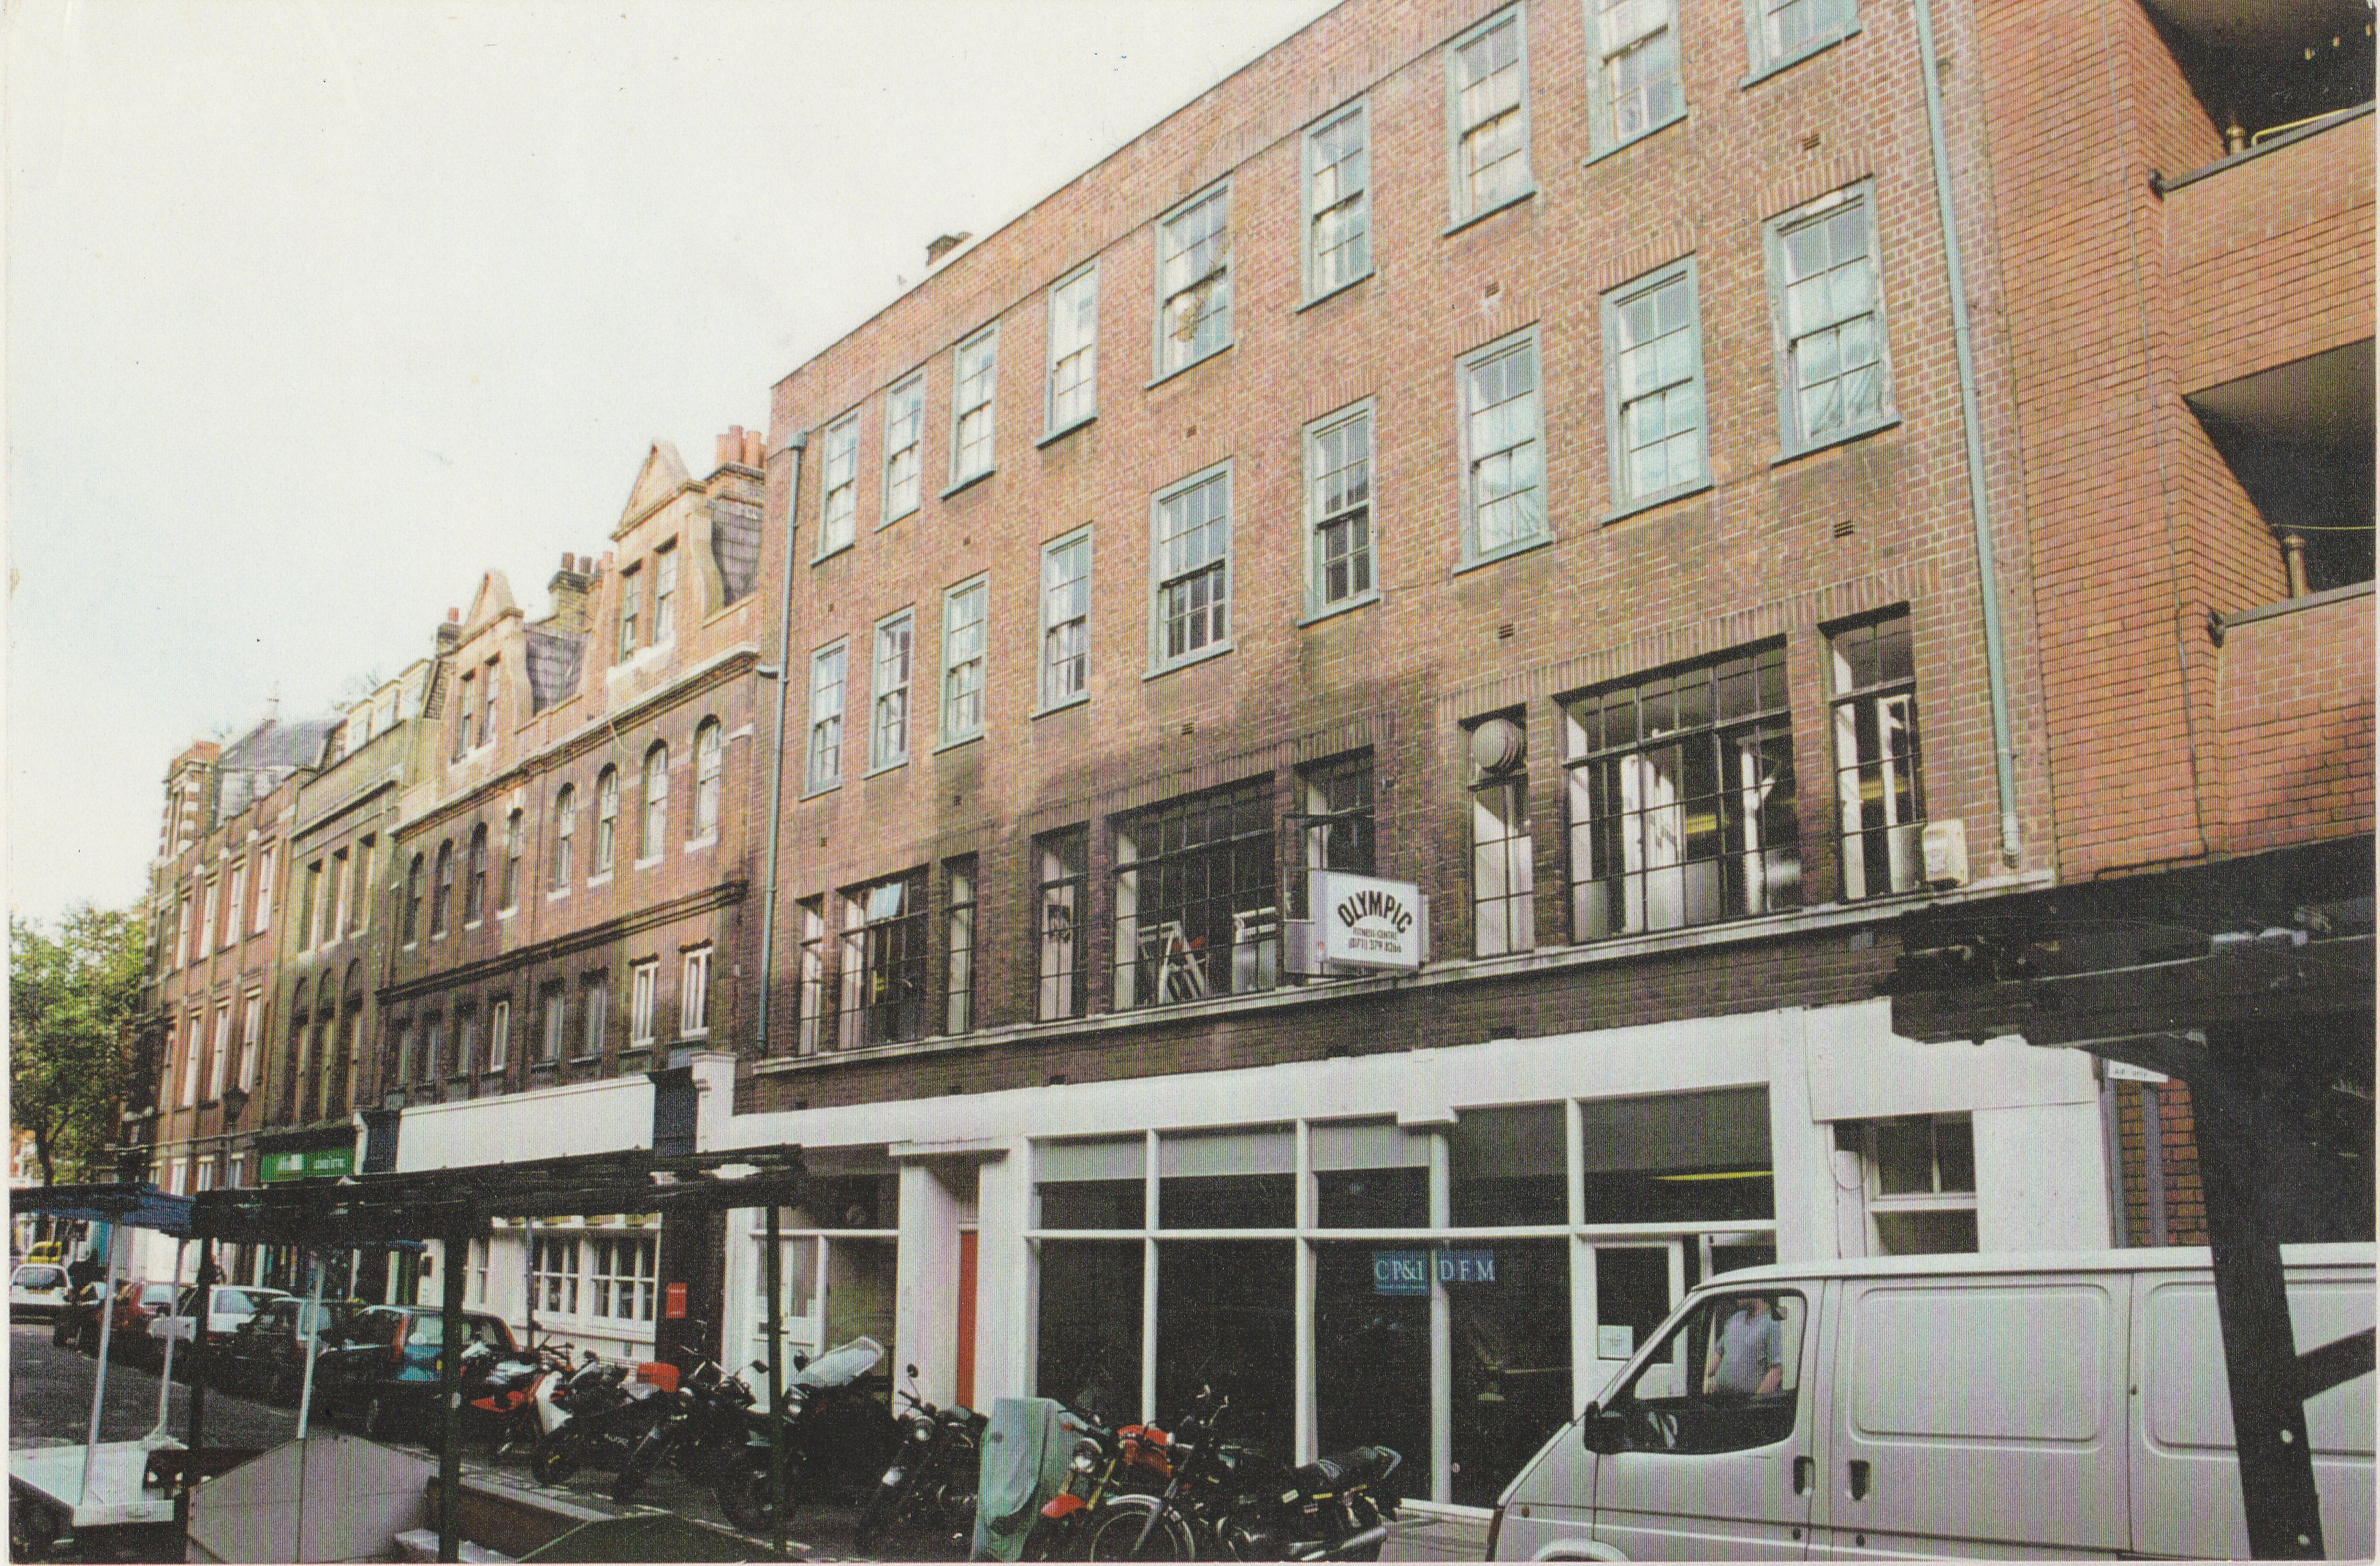 Earlham Street west facades before restoration by Shaftesbury PLC.